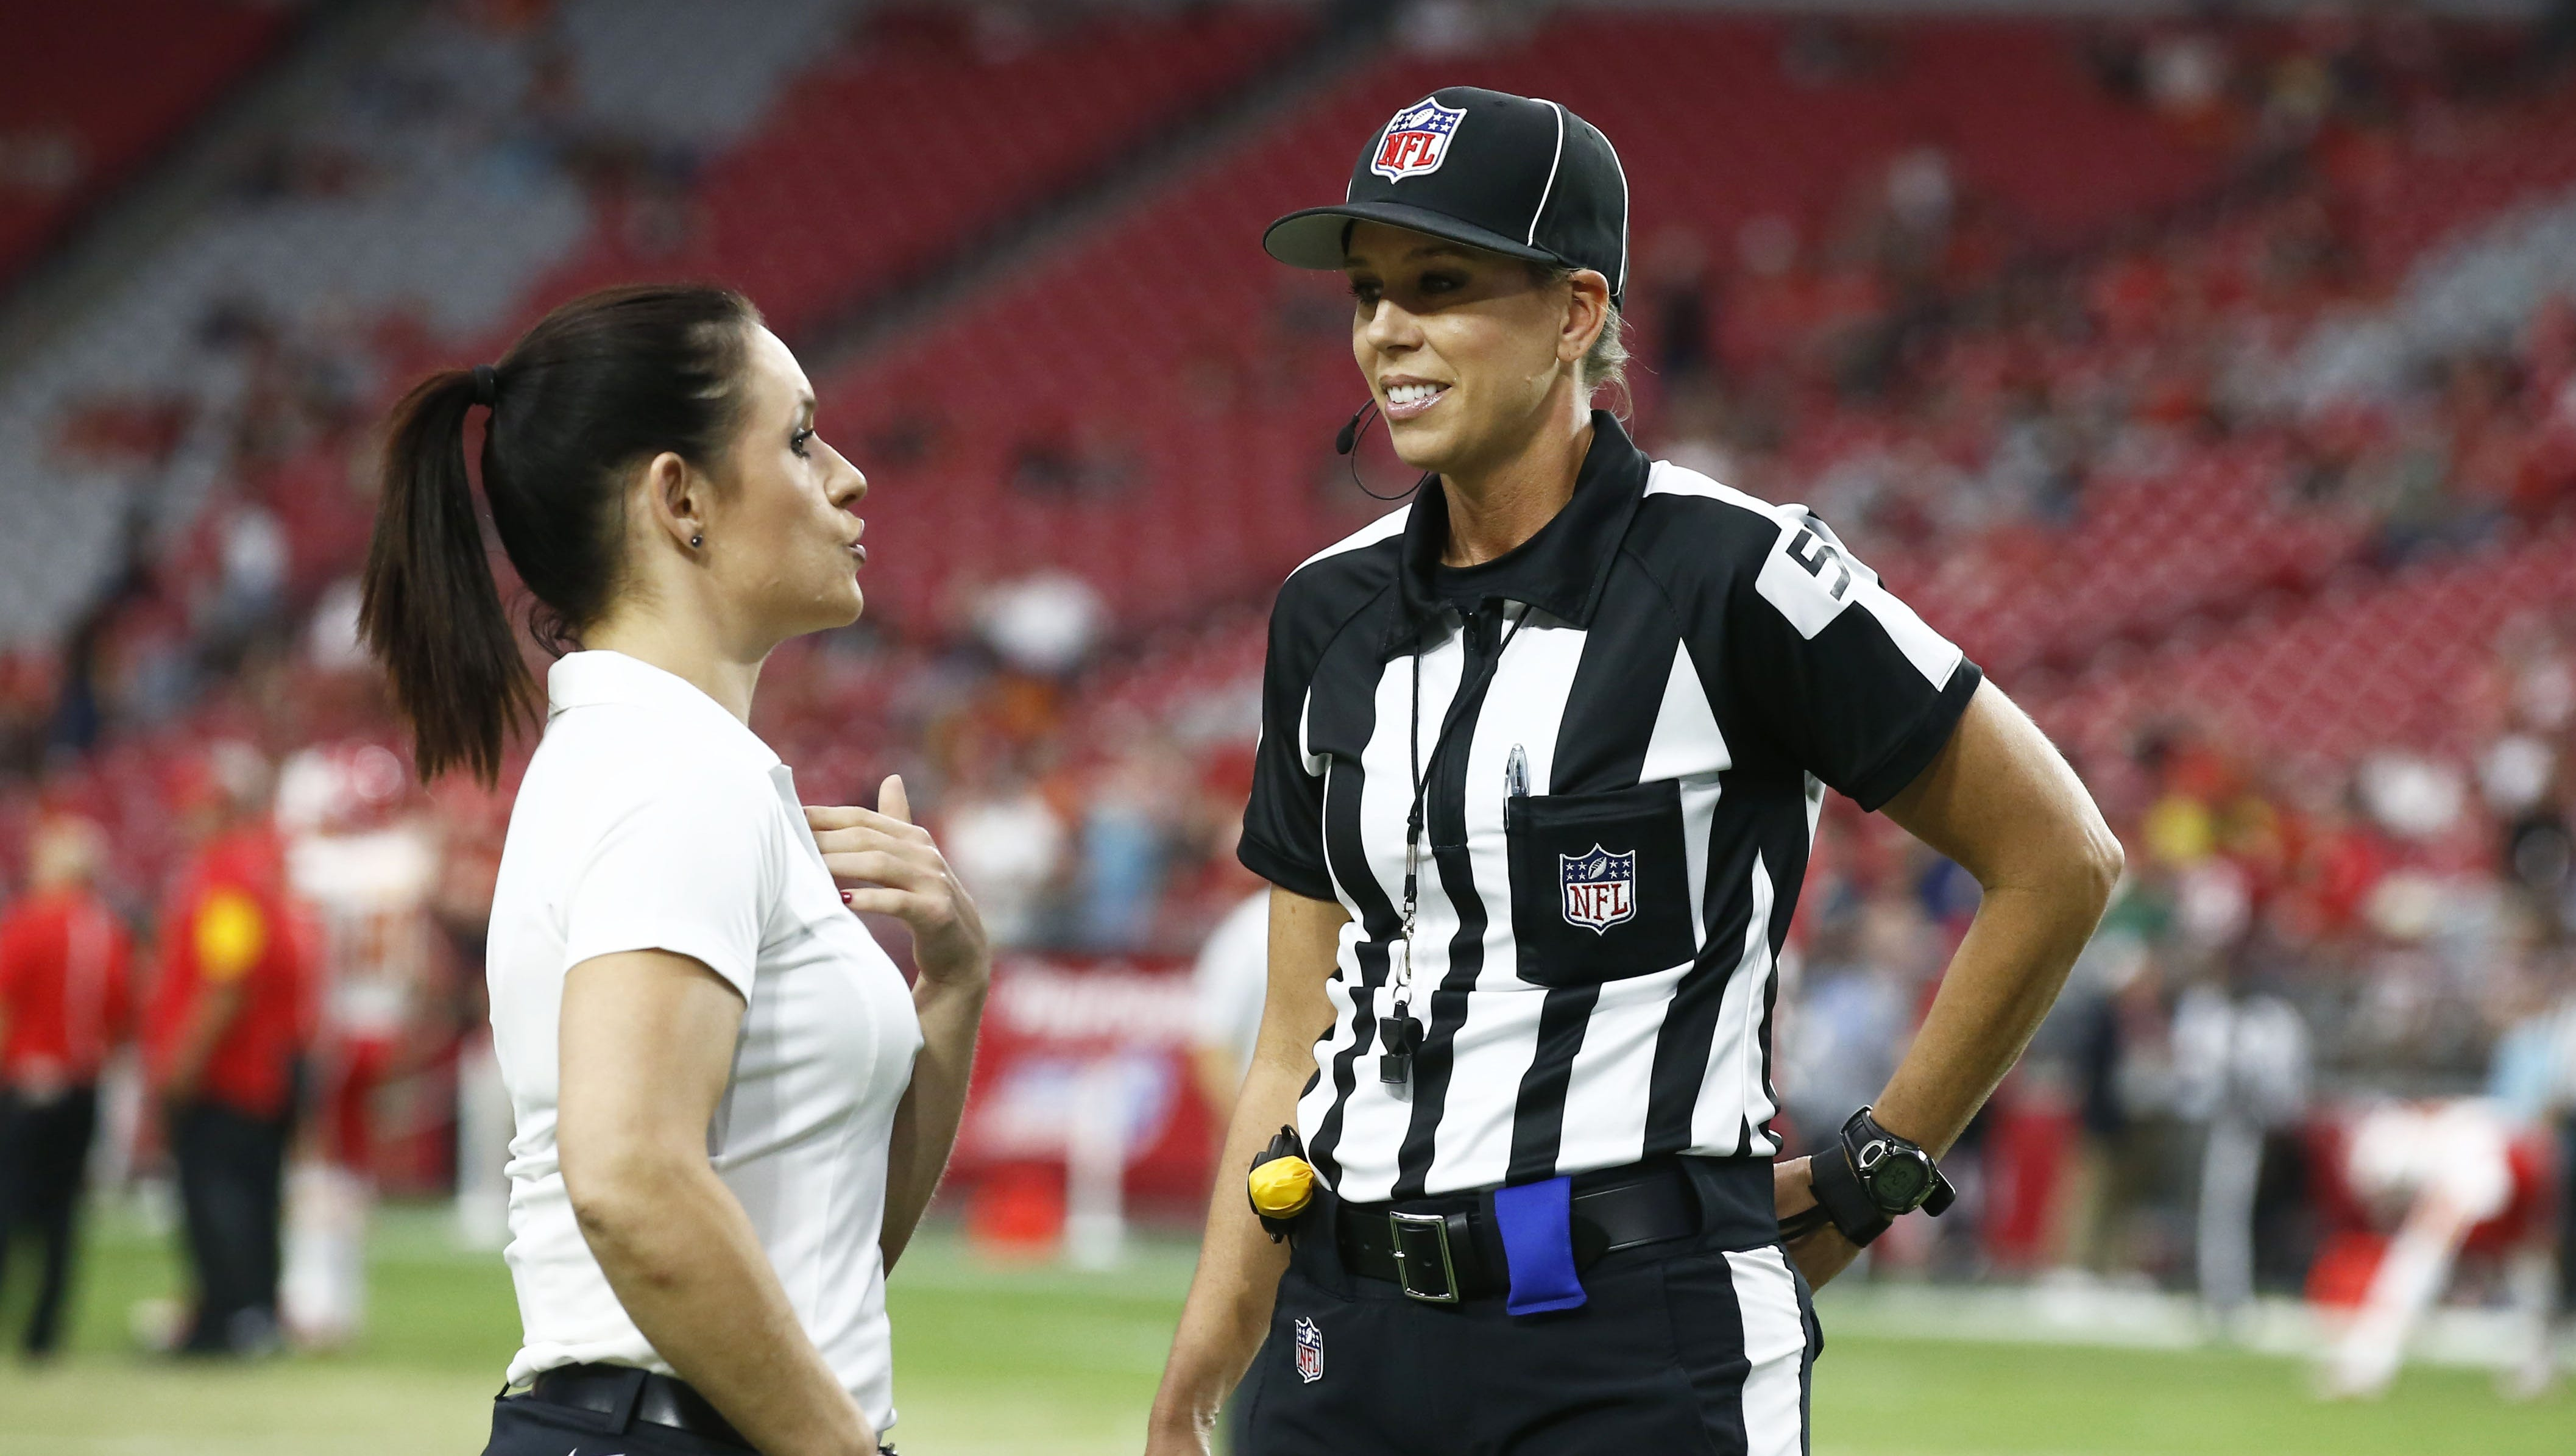 Arizona Cardinals coach Jen Welter teams up with official Sarah Thomas for  night of NFL firsts